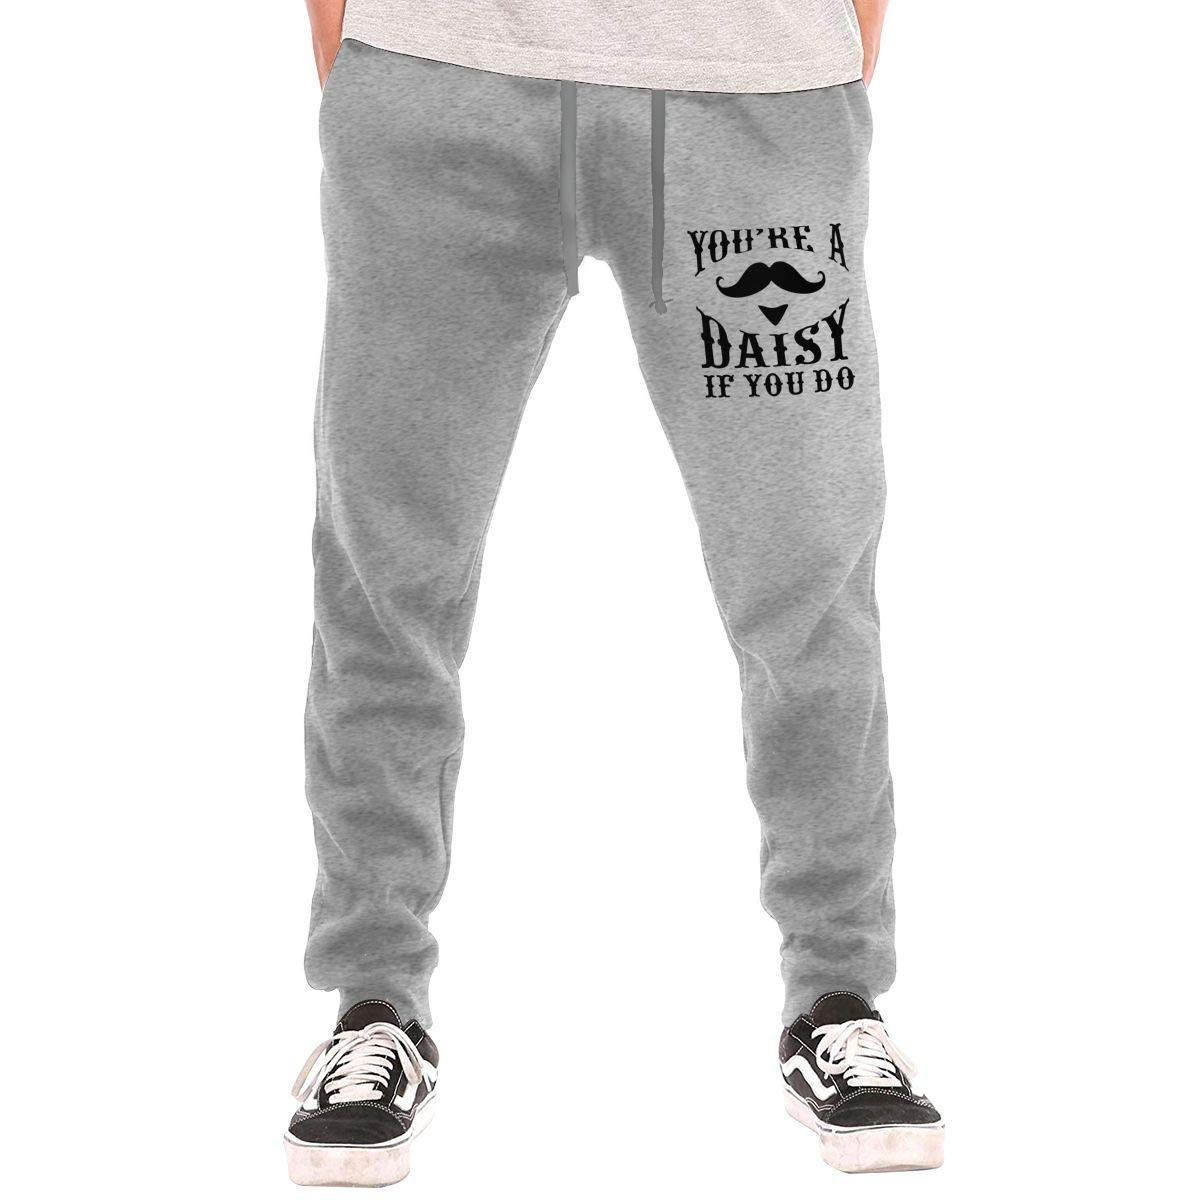 Youre A Daisy If You Do Mens Active Long Pants Casual/ï/¼/ŒFashion Pants Jogger Sweatpants.